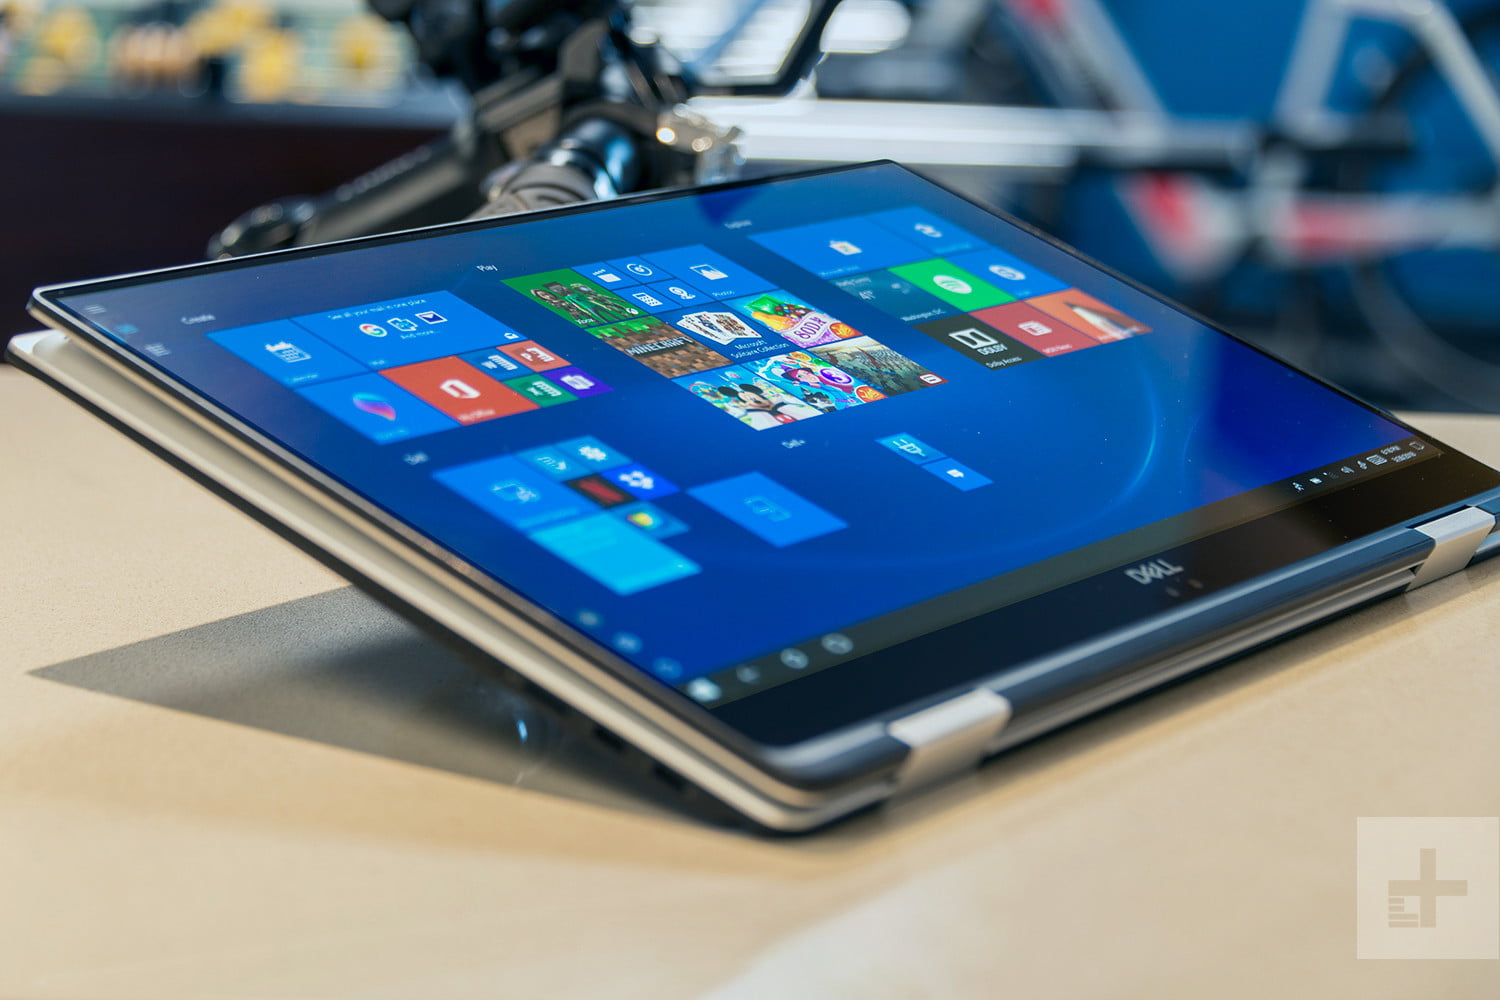 dell xps 15 2 in 1 2019